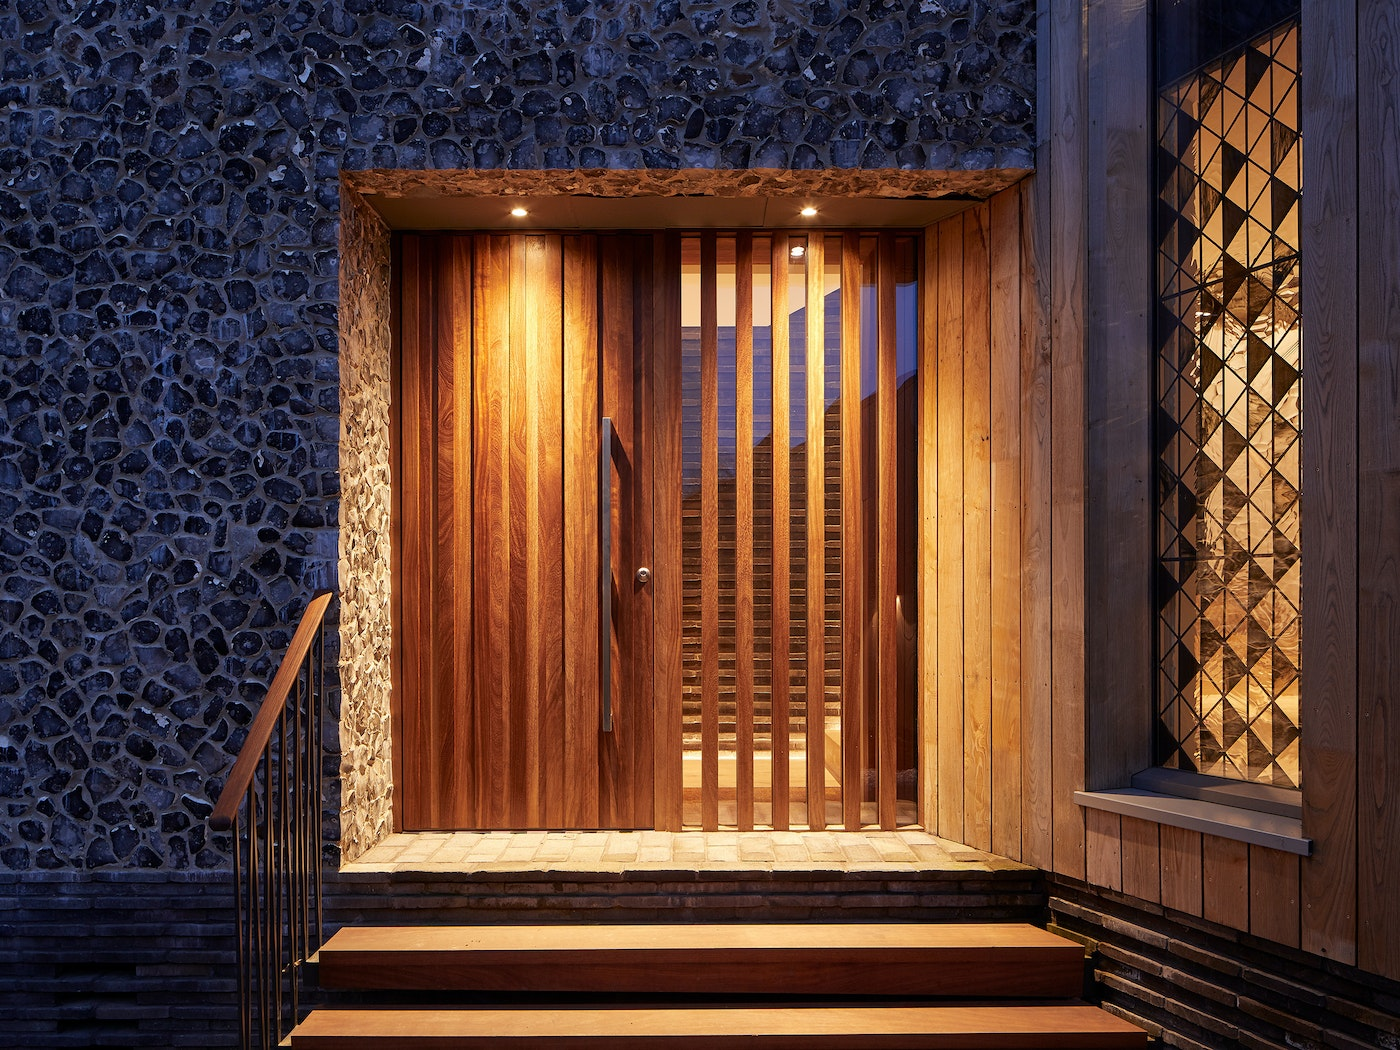 Bespoke Iroko hardwood door designed by the architects